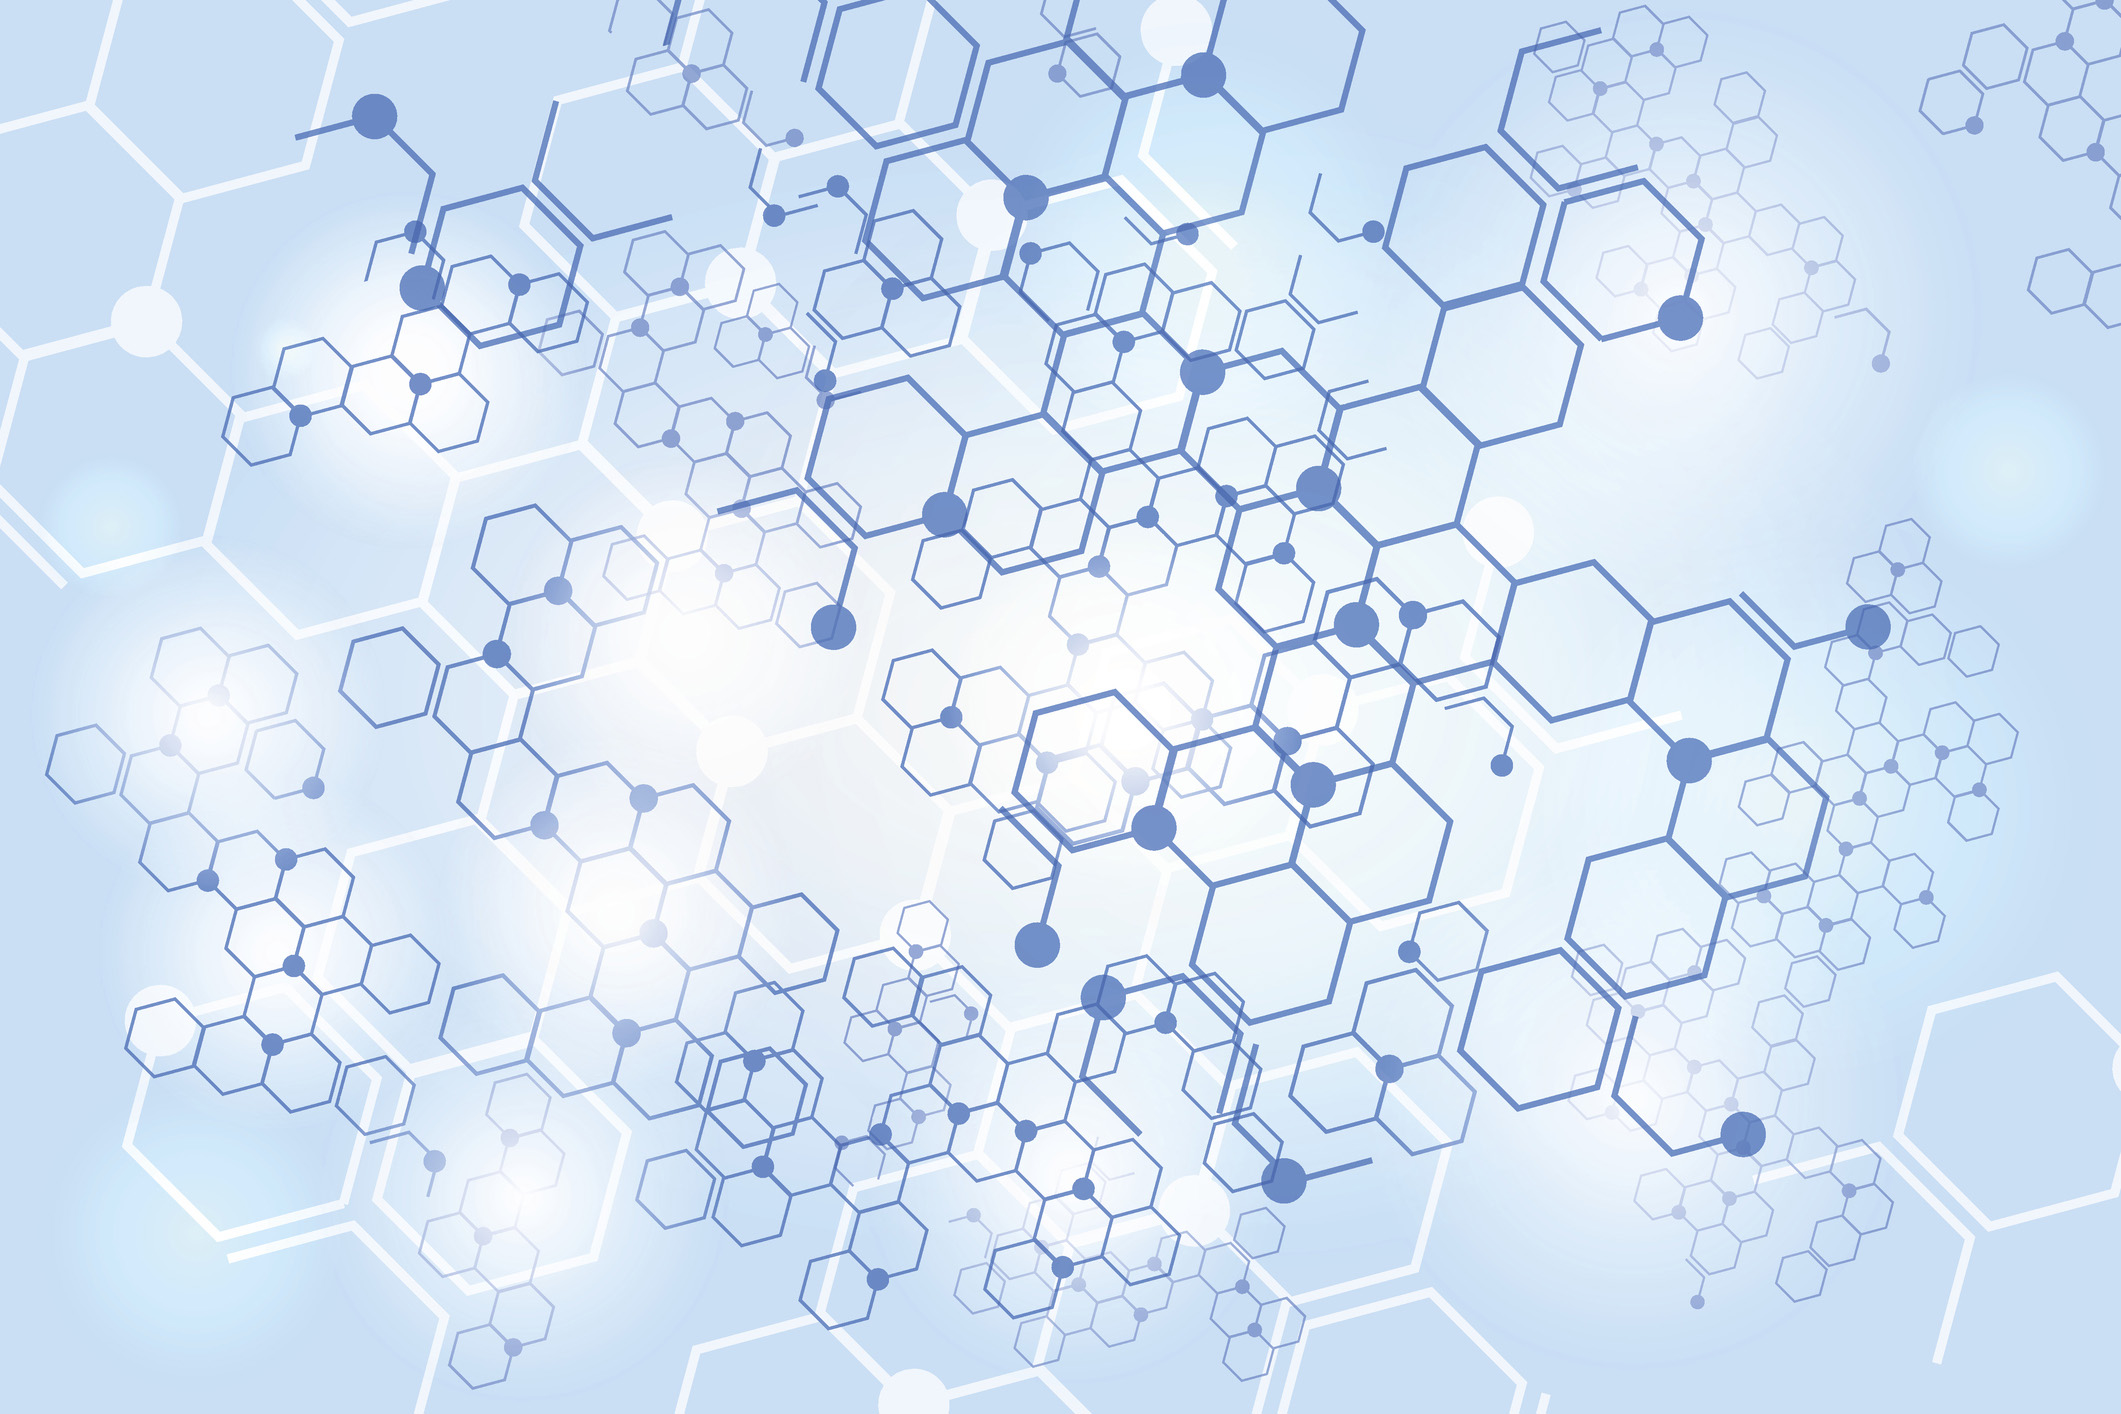 Lots of hexagon chemical structures layered over each other